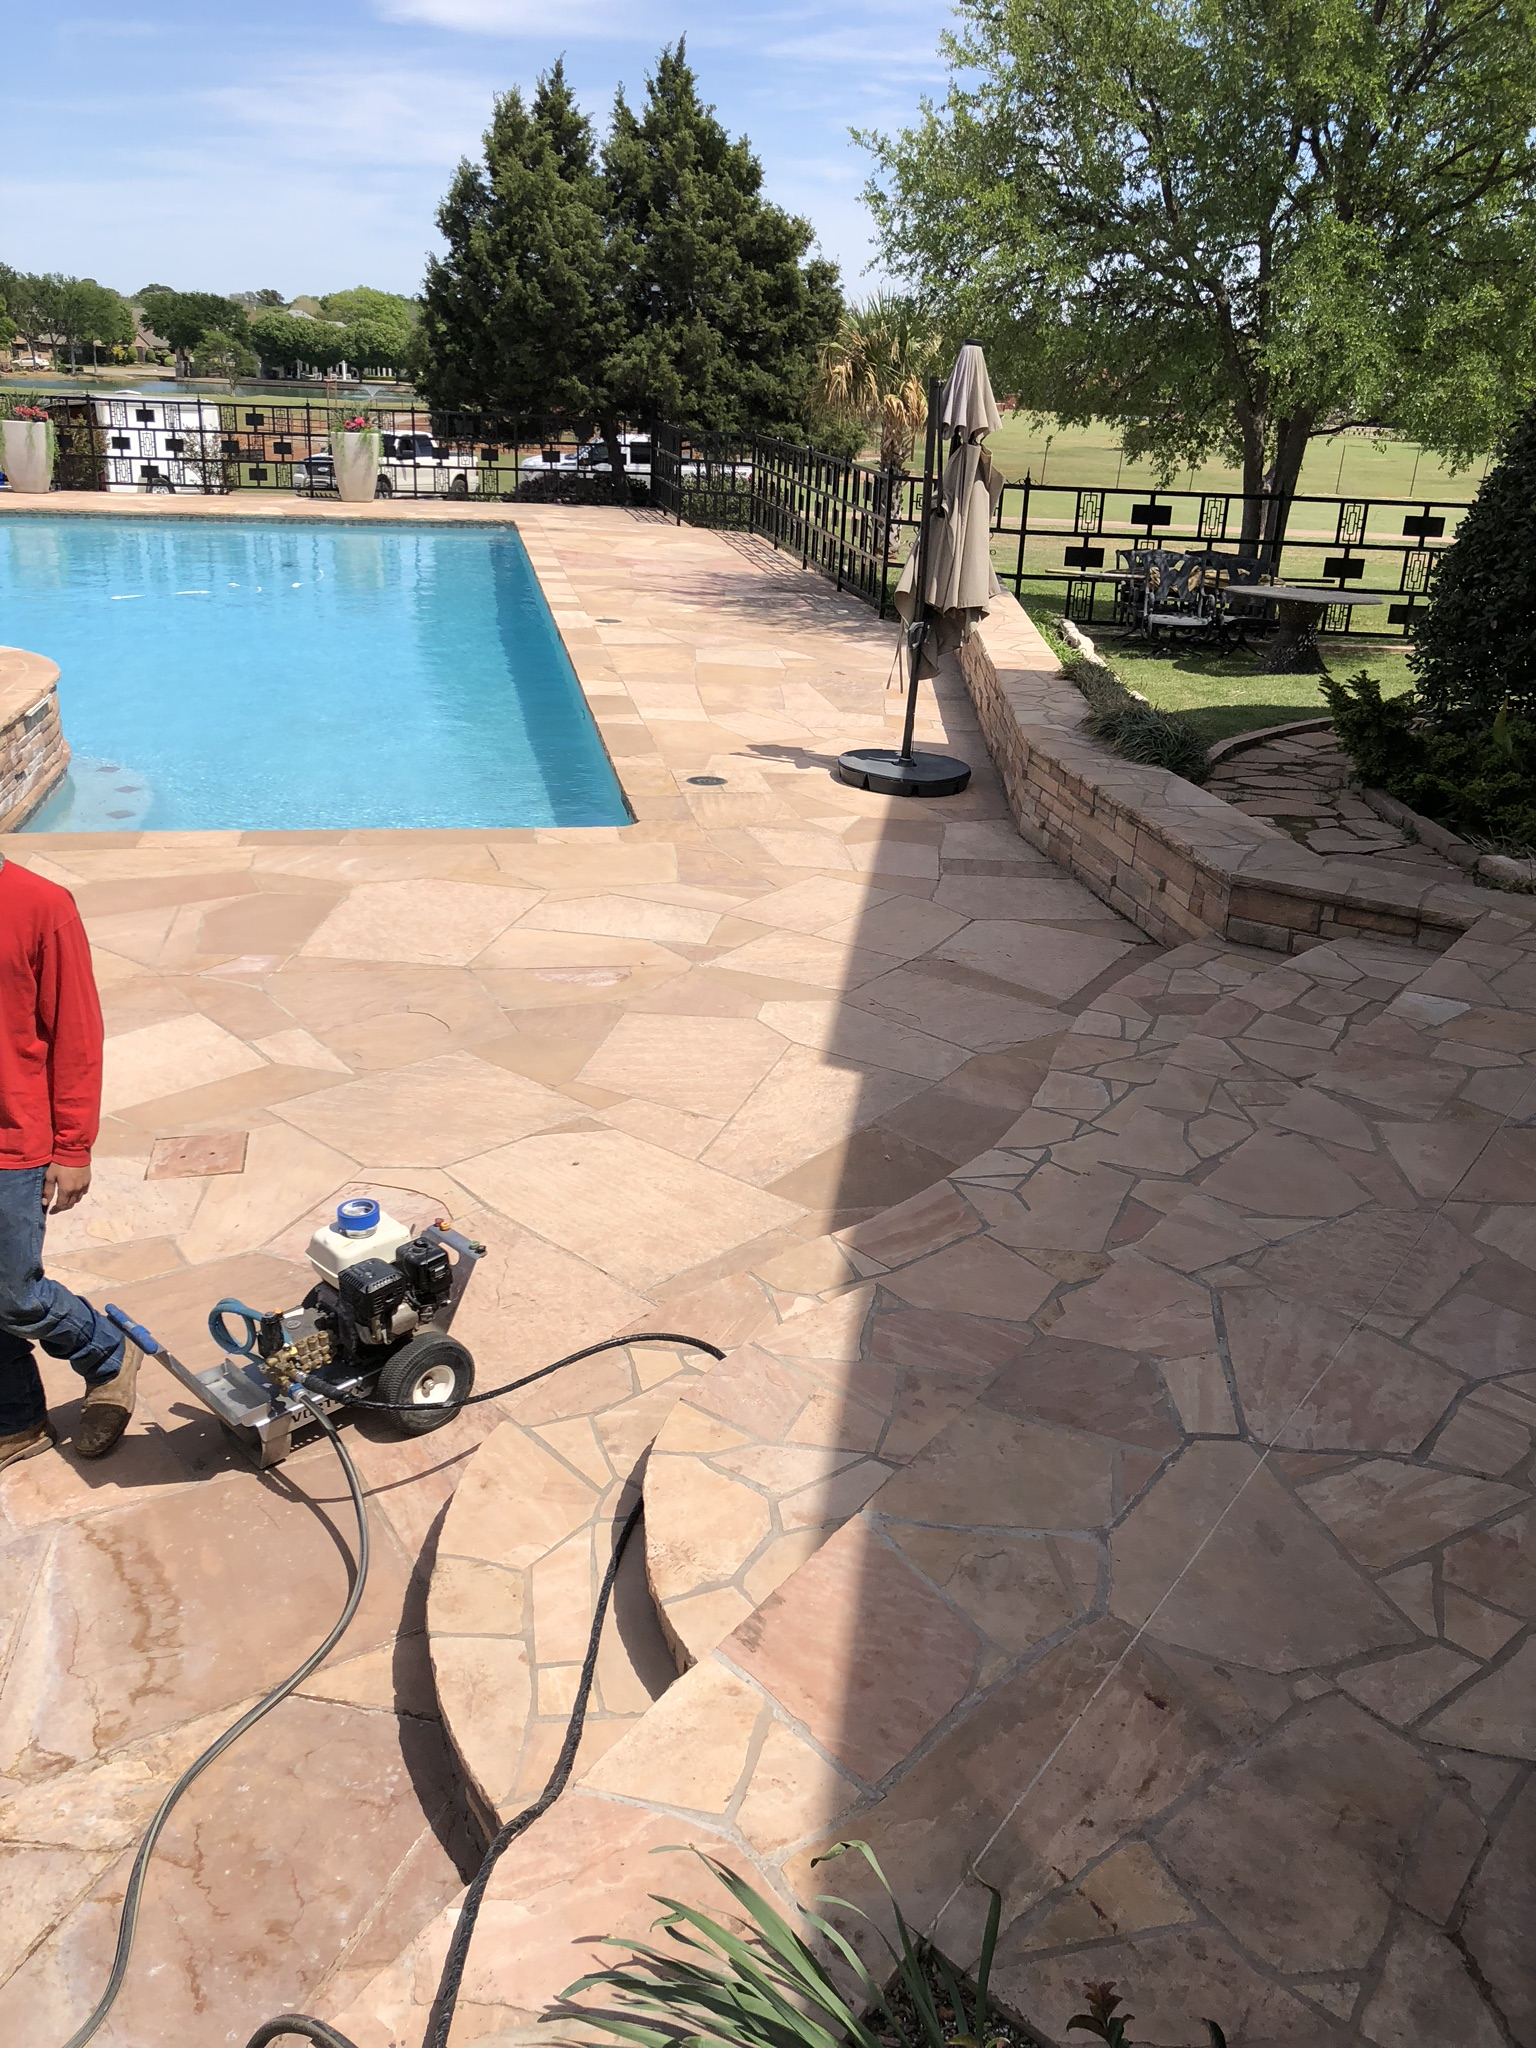 It took our team two days to install the Stone Armor product for over 6,000 Square Feet of Arizona Flagstone. That's an incredible pace for such a large surface area to install this product. At Advocate Construction, we care about doing the job quickly and efficiently.